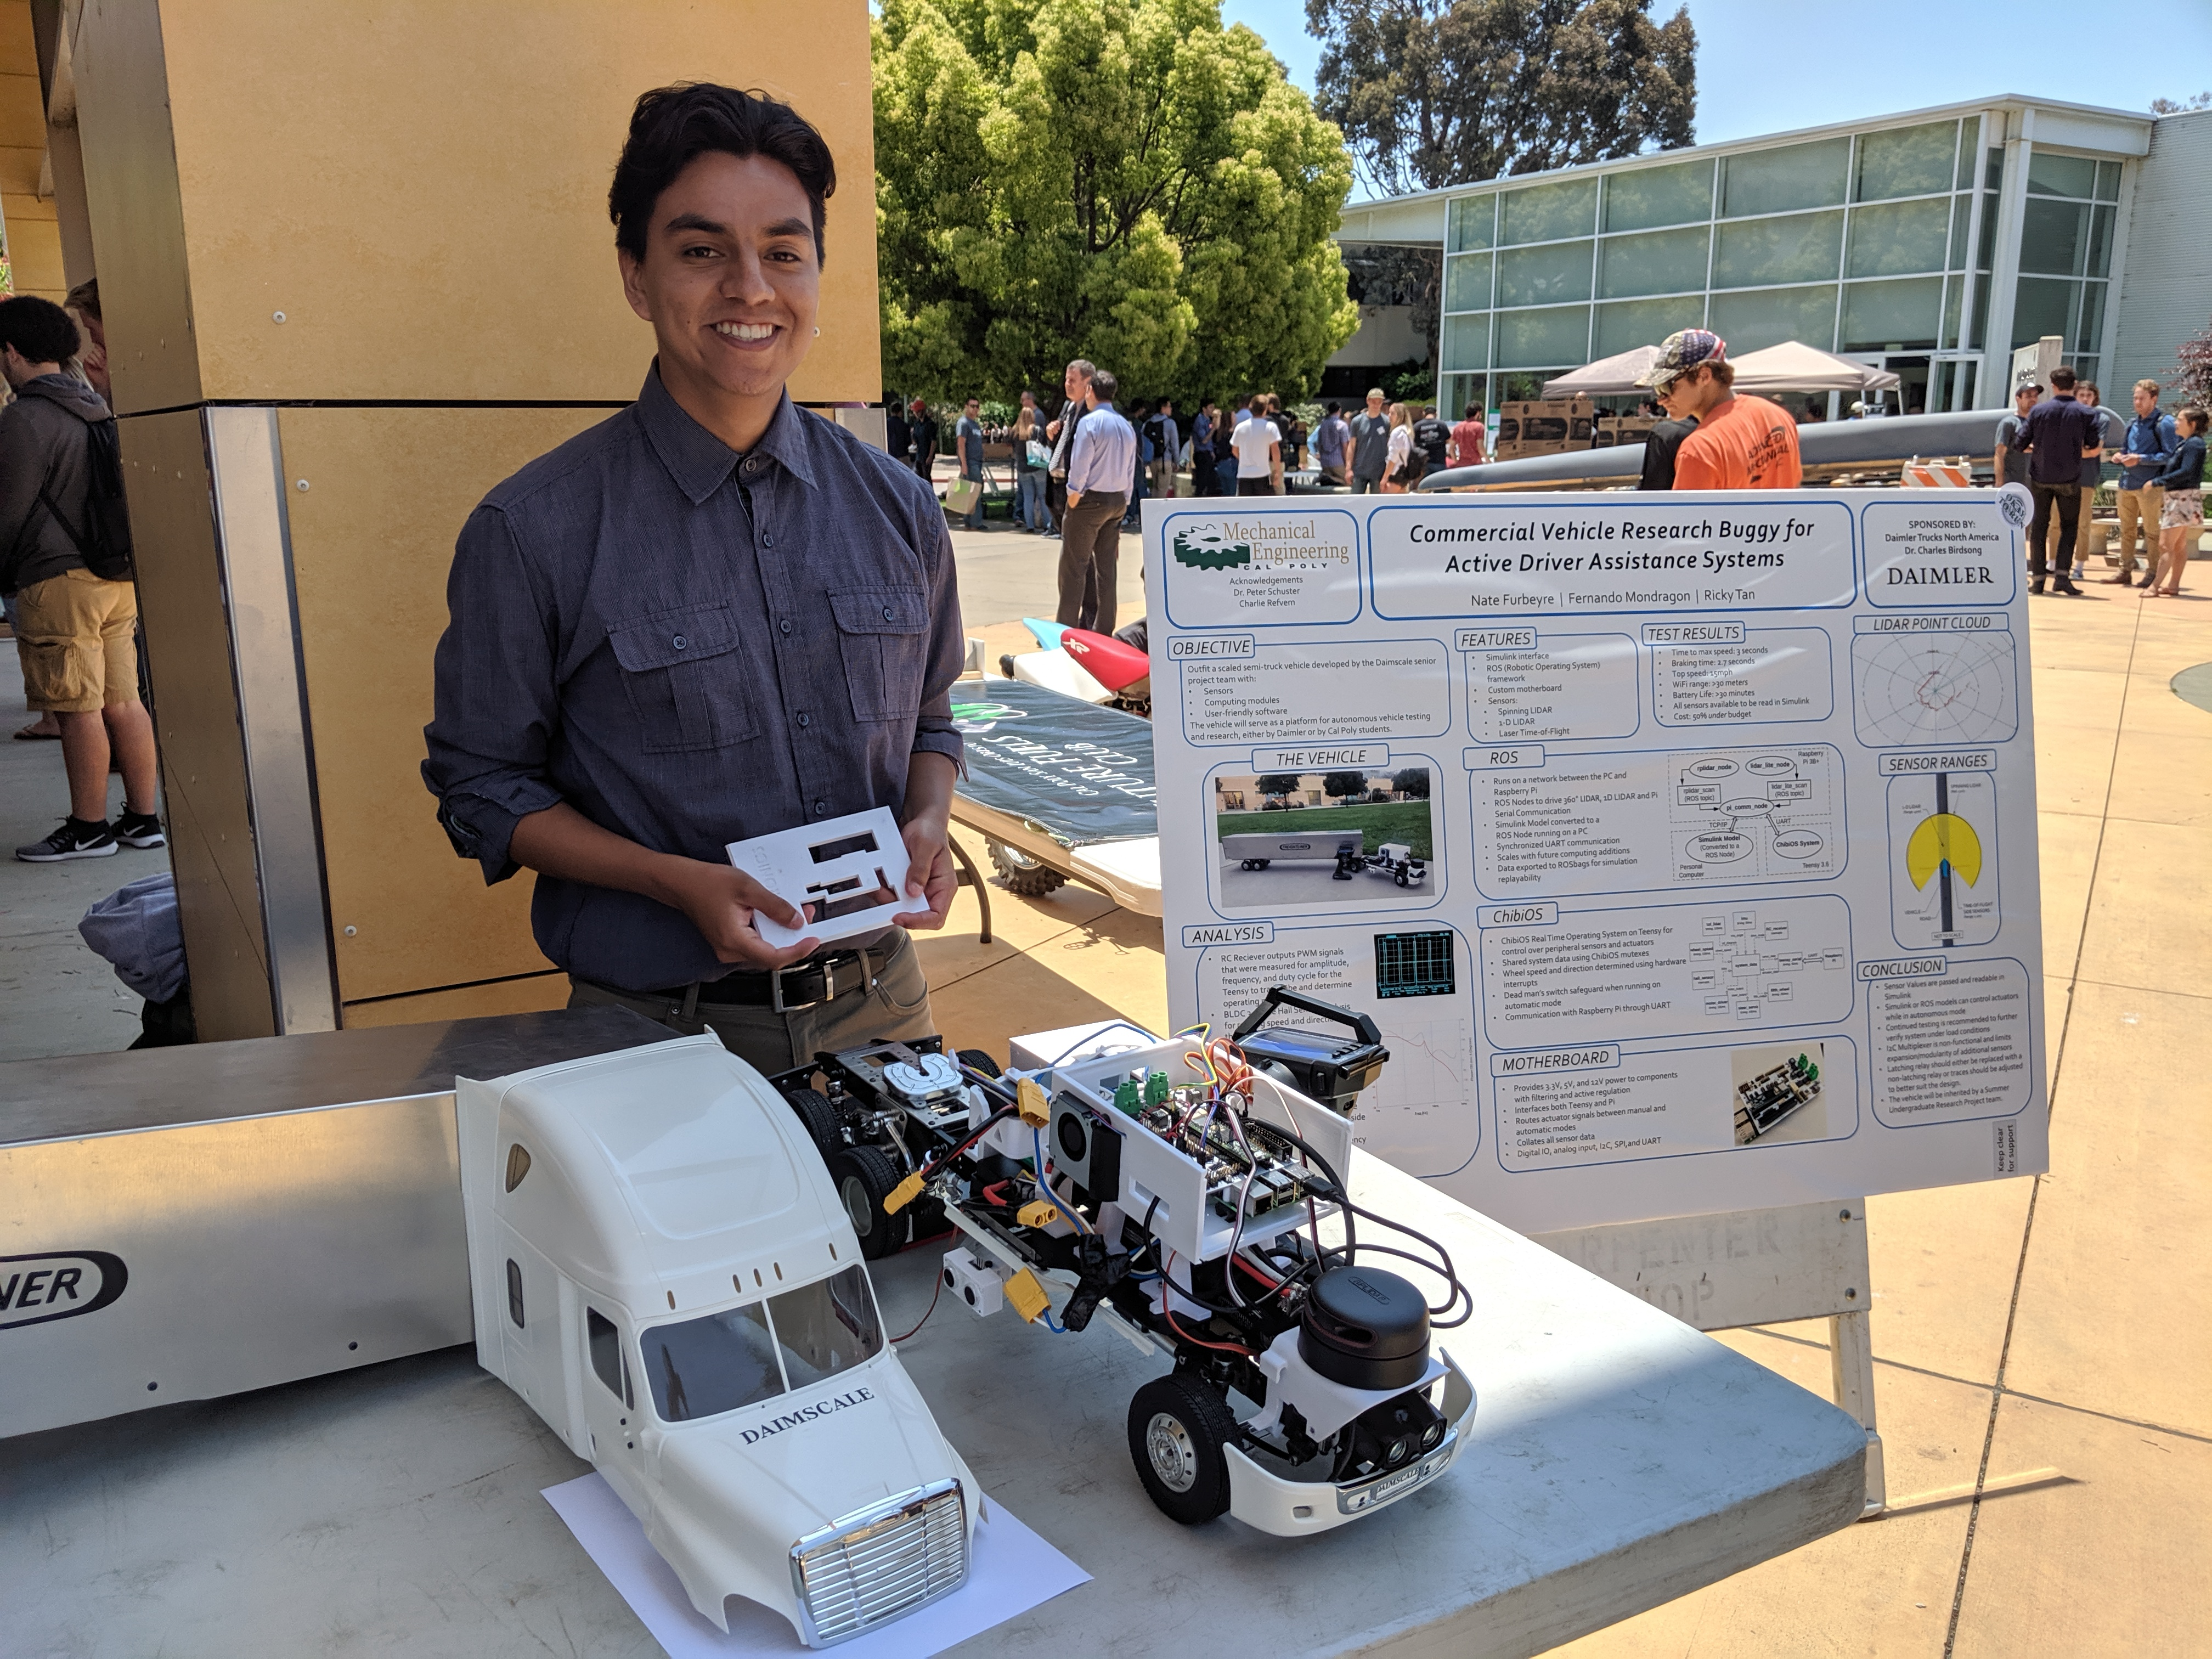 Fernando Mondragon-Cardenas and his senior project team developed a small scale tractor-trailer autonomous vehicle under the guidance of Professor Charles Birdsong.